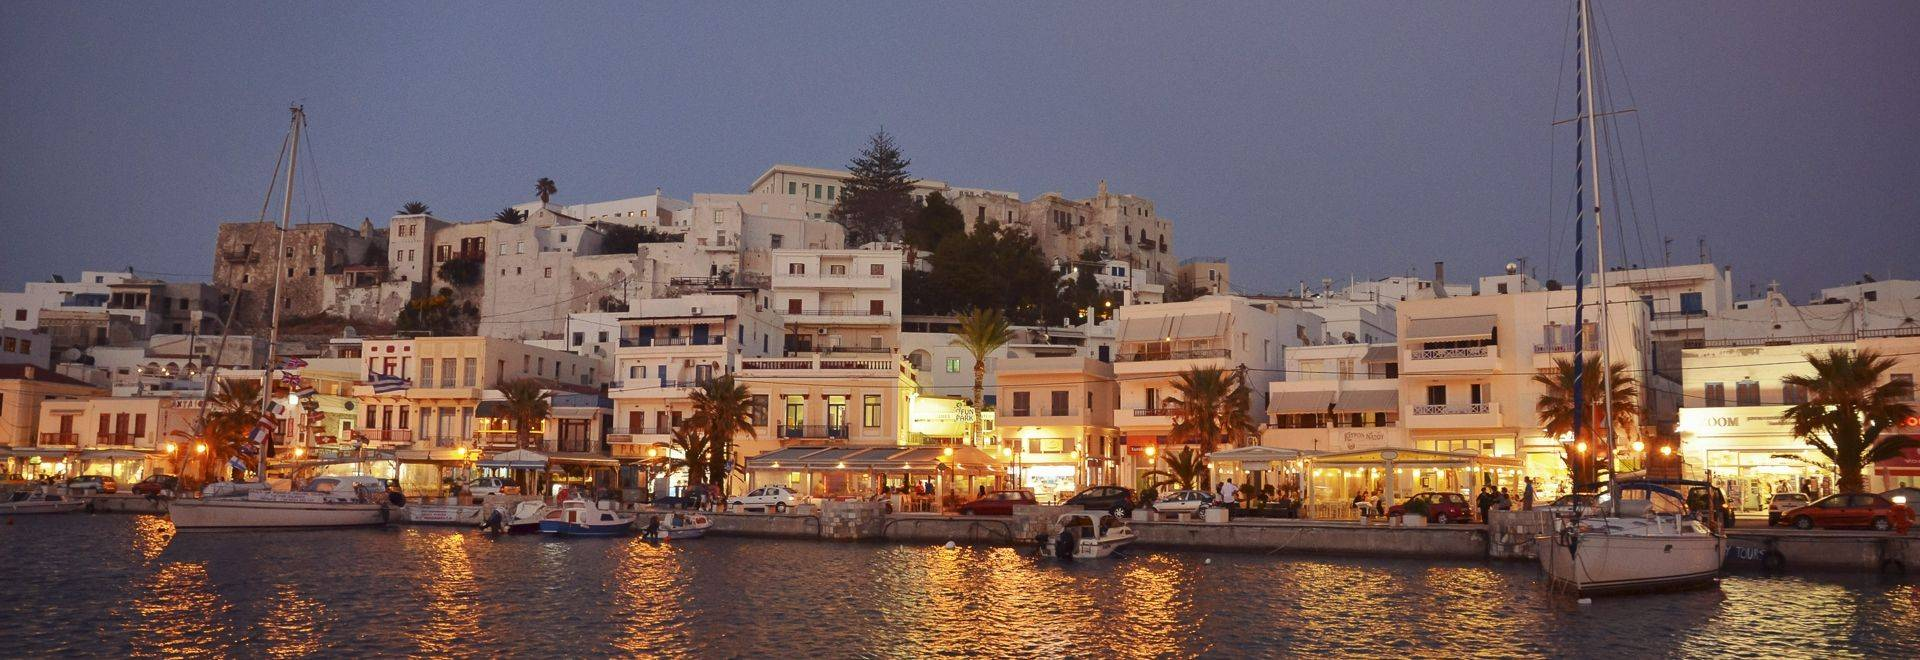 Greece Island Sailing Port Town Night-Scott Urquhart 2013-DSC0955 processed Lg RGB.jpg